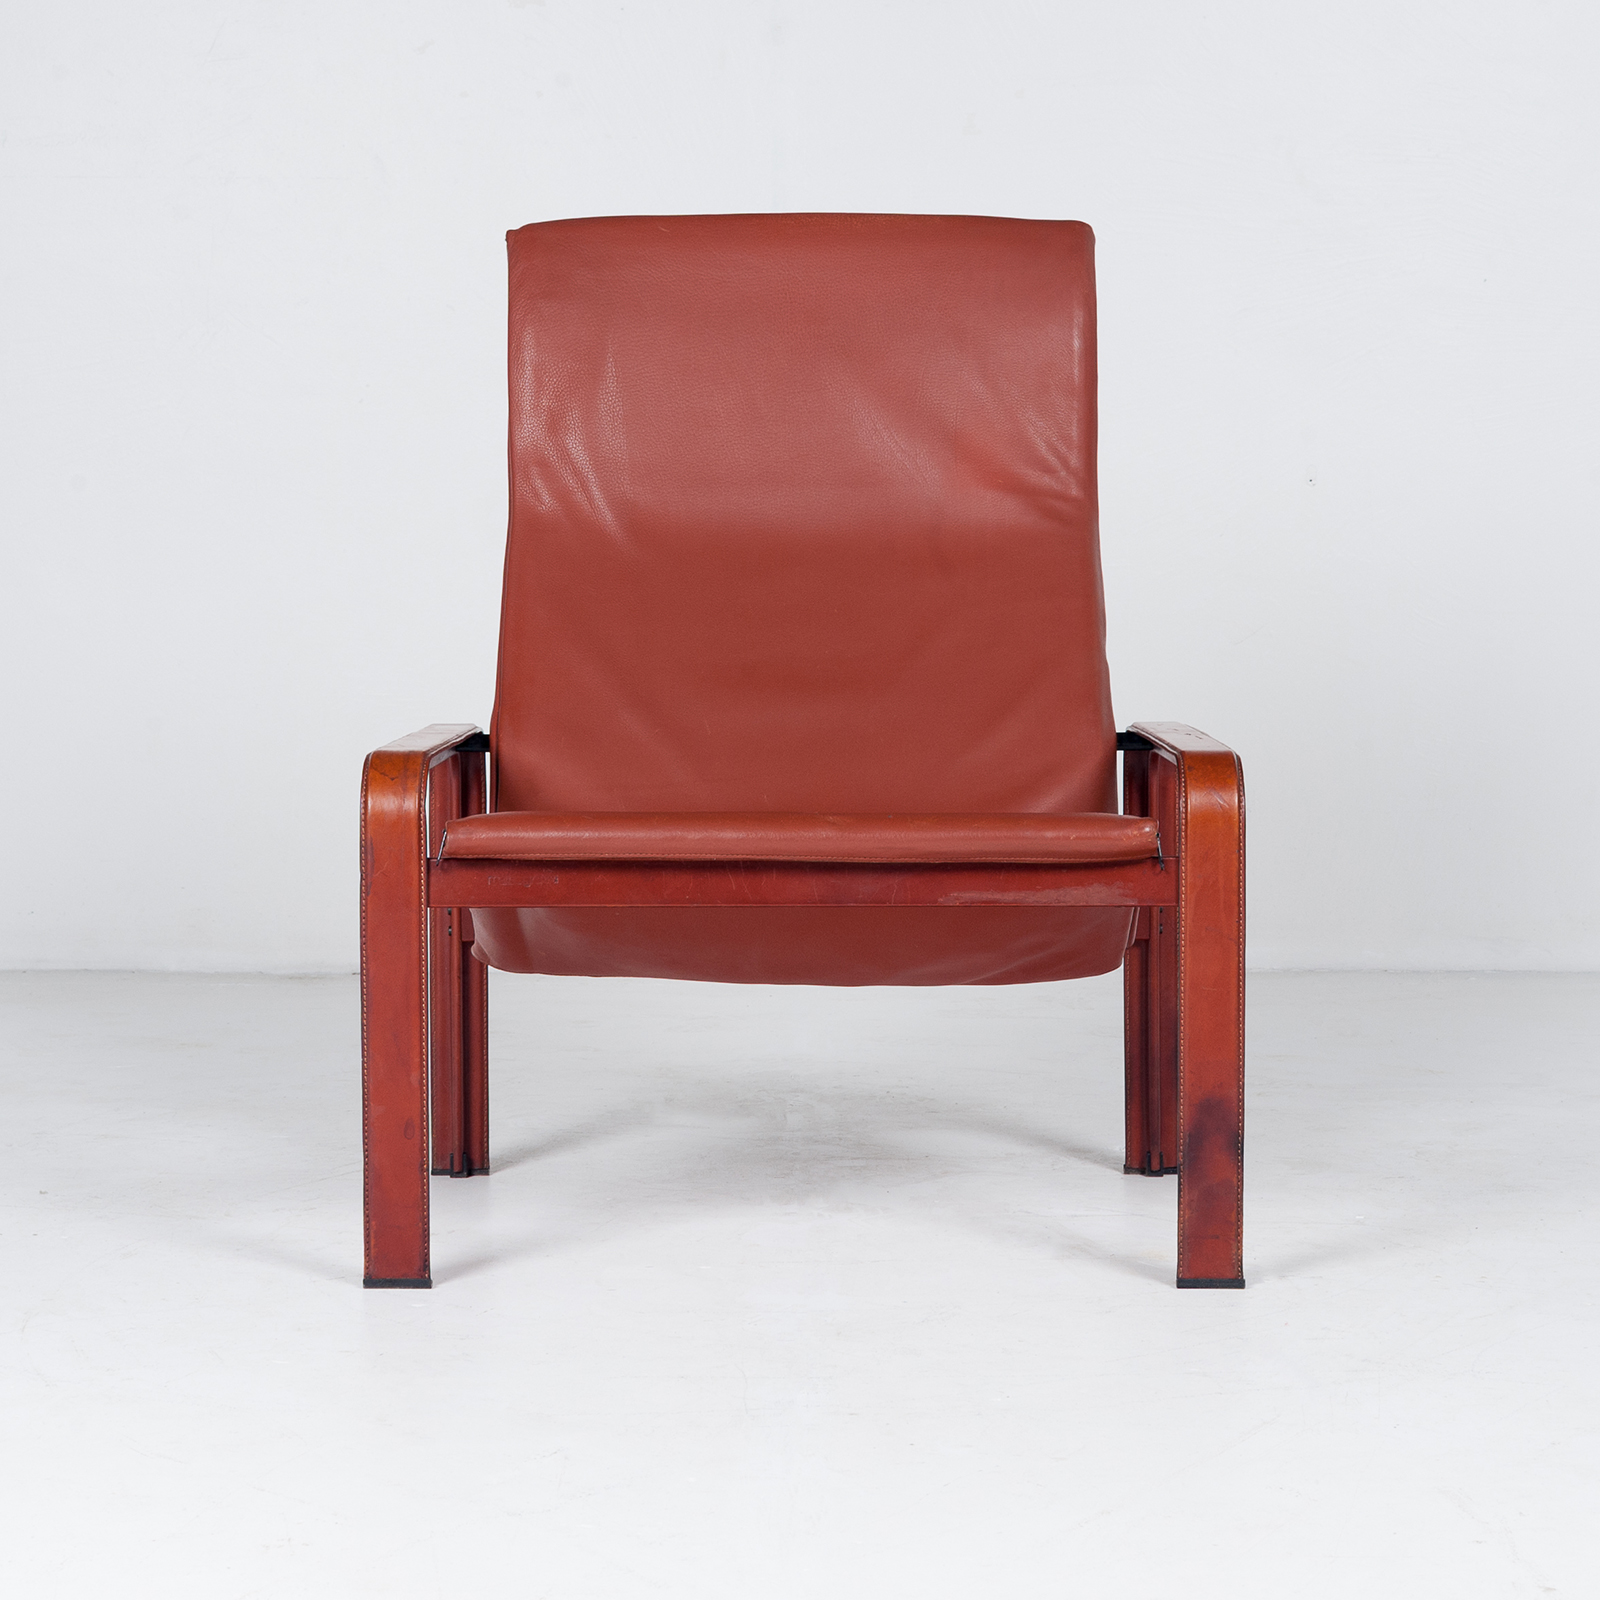 Armchair In Tan Leather By Matteo Grassi (mt Ac 194 128 It) 949